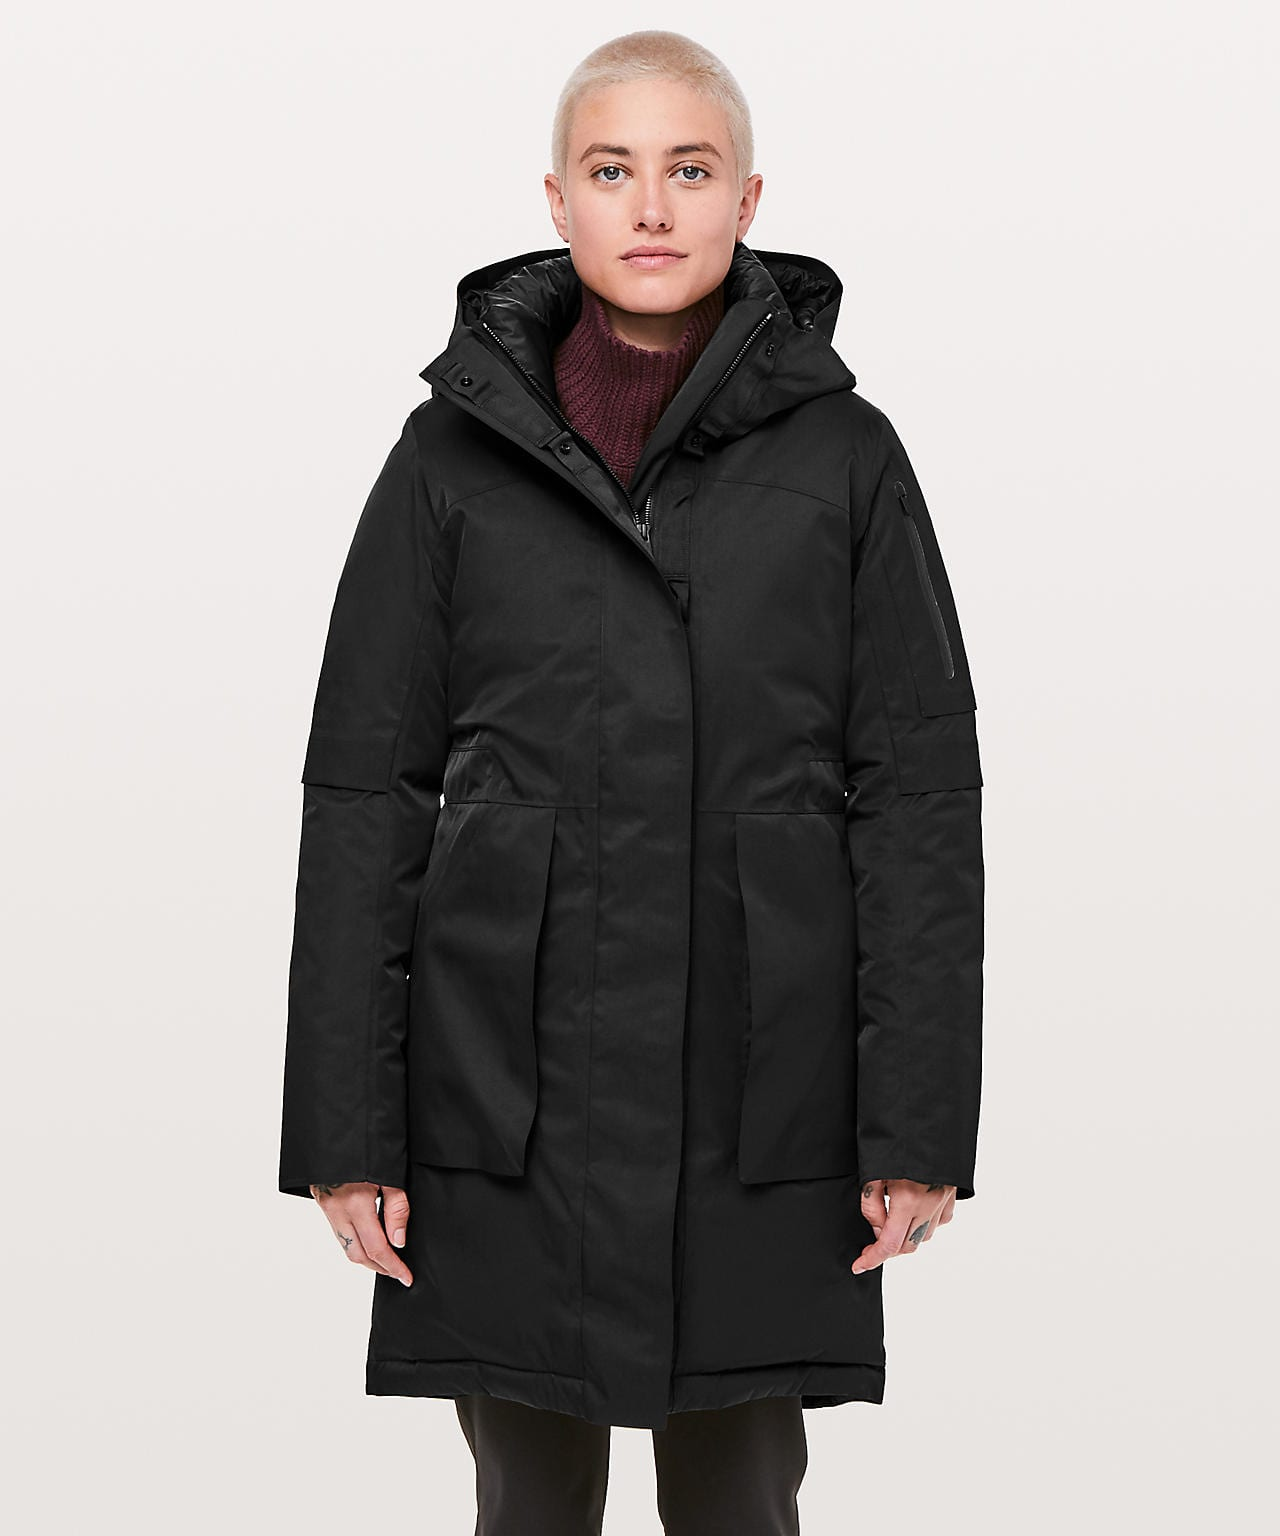 Winter Warrior Parka